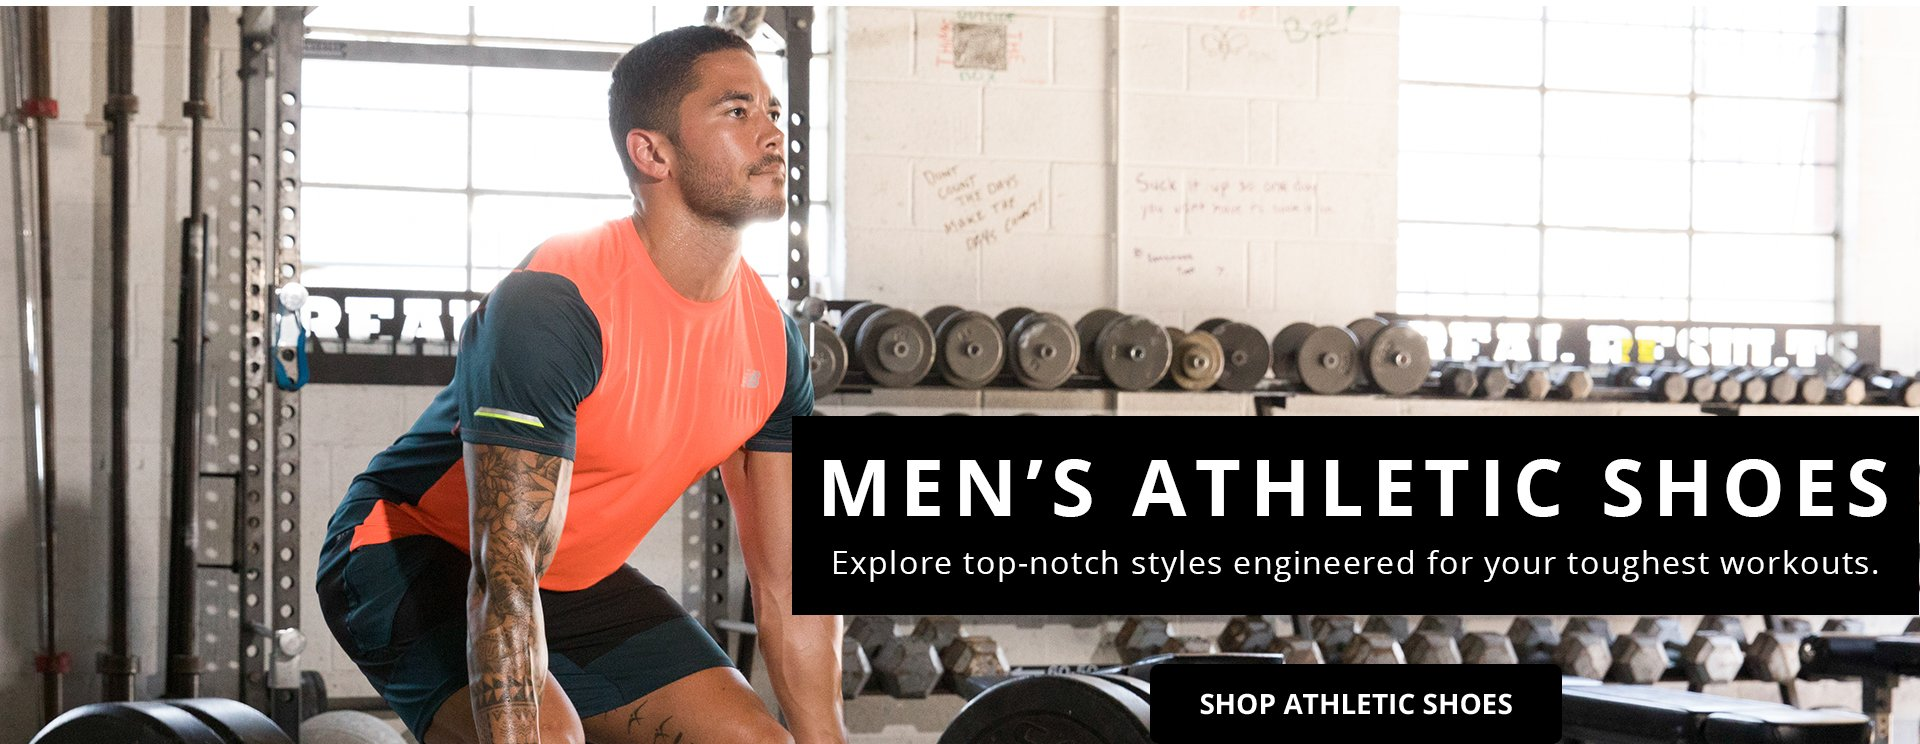 Men's Athletic Shoes. Explore top-notch styles engineered for your toughest workouts. Shop Athletic Shoes.